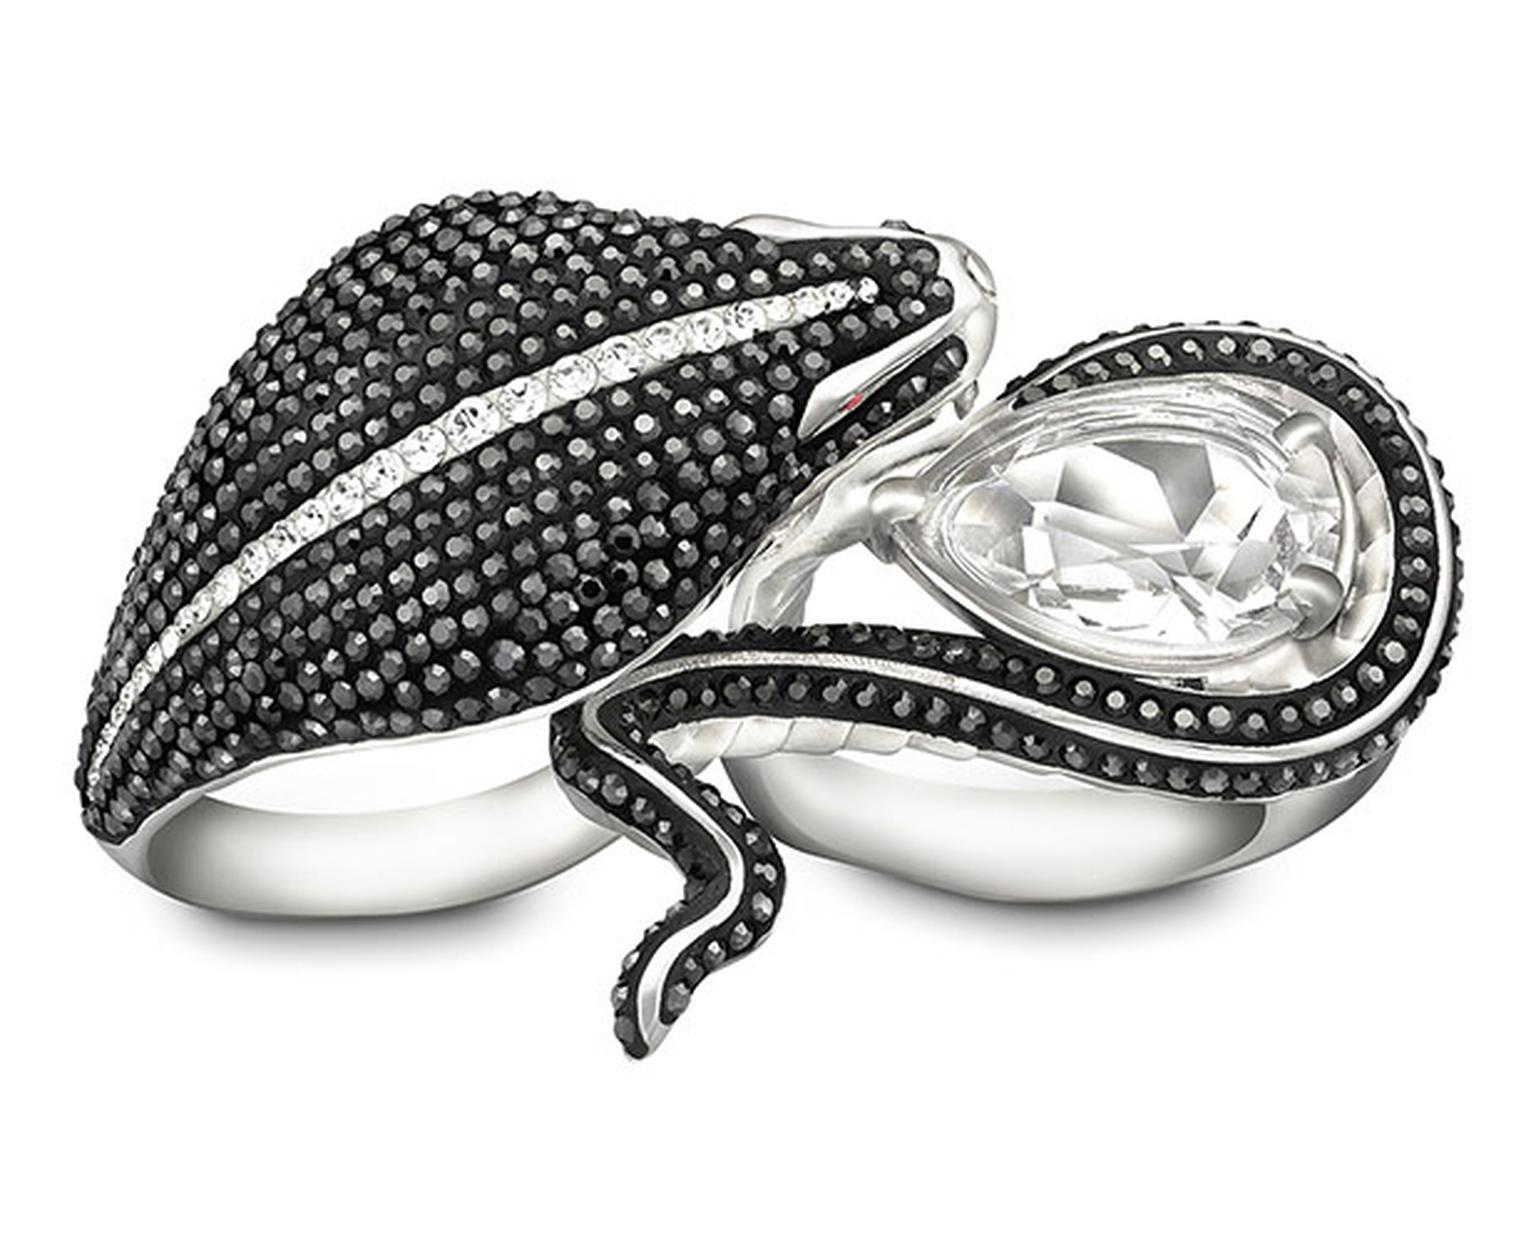 Stephen-Webster-Queen-Cobra-double-ring